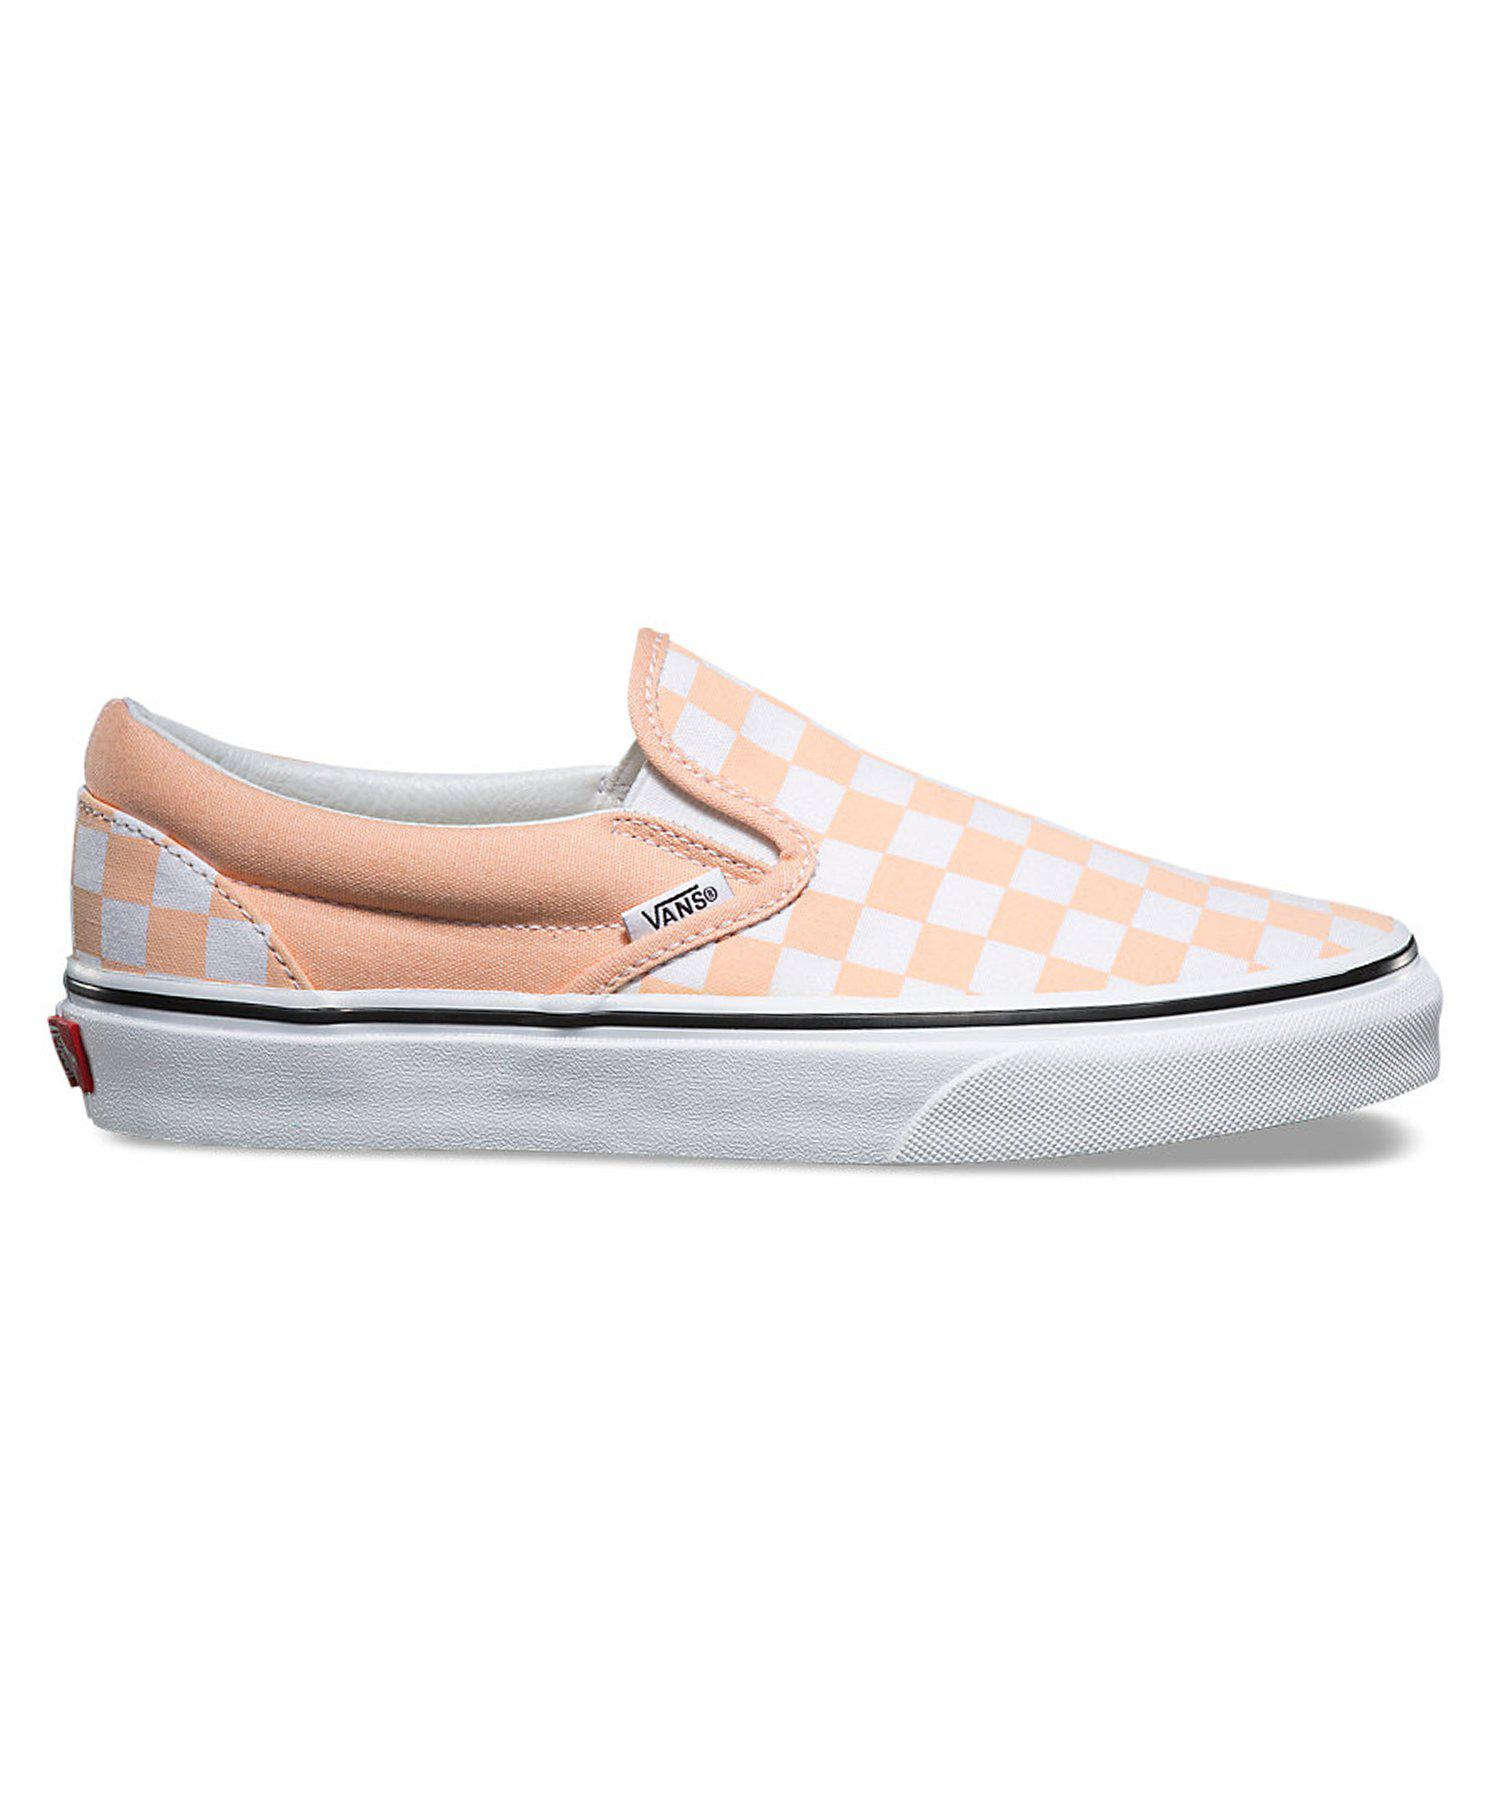 Vans Classic Checkerboard Slip-on In Bleached Apricot in Orange for ... c7847a6b7